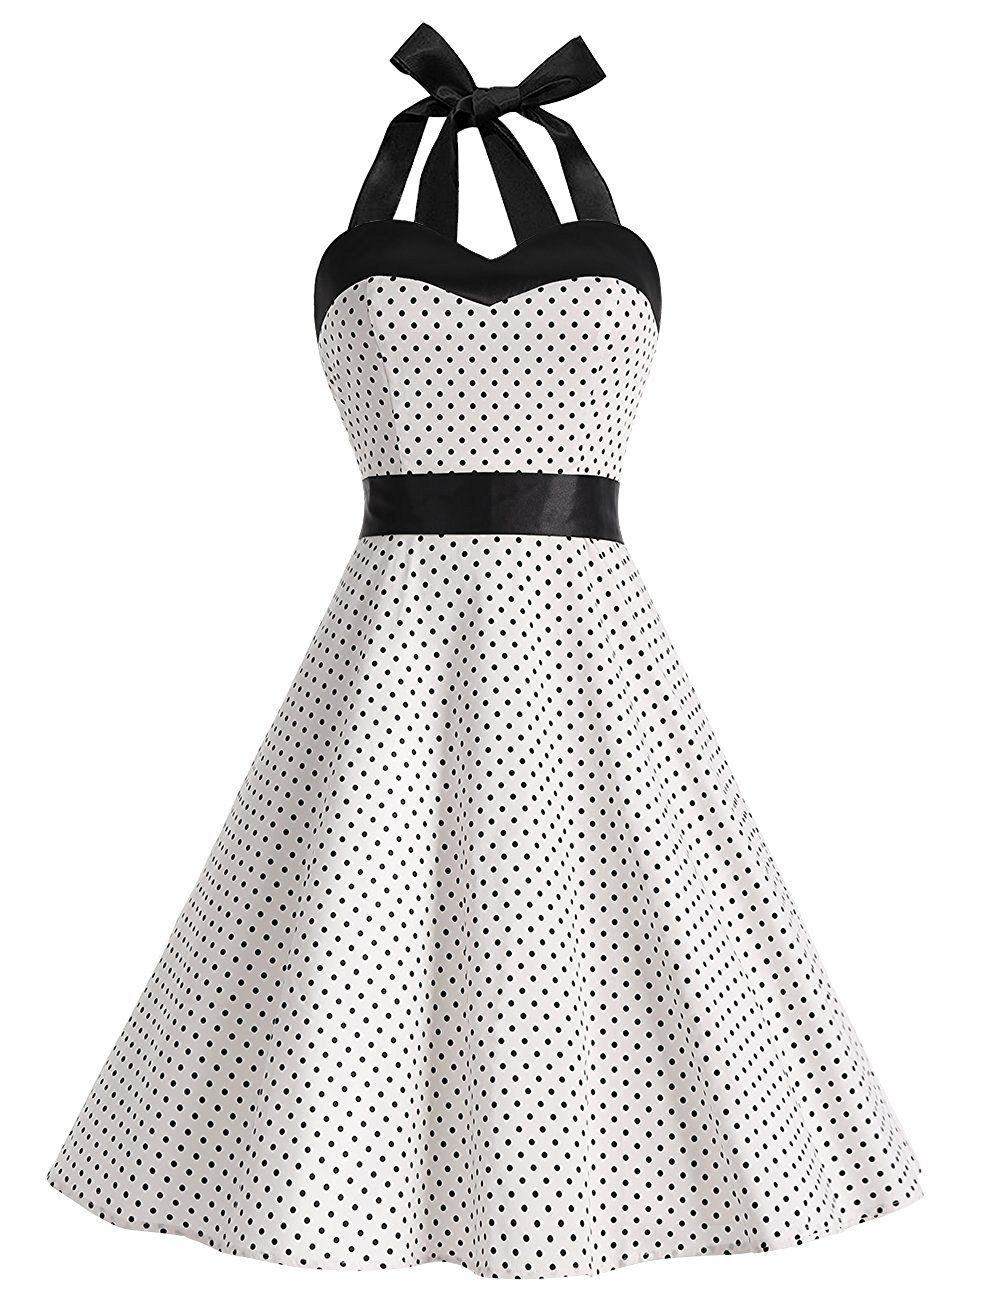 50s vintage style halter white polka dots ruched retro dress style Party 1950 Style Clothing 50s vintage style halter white polka dots ruched retro dress